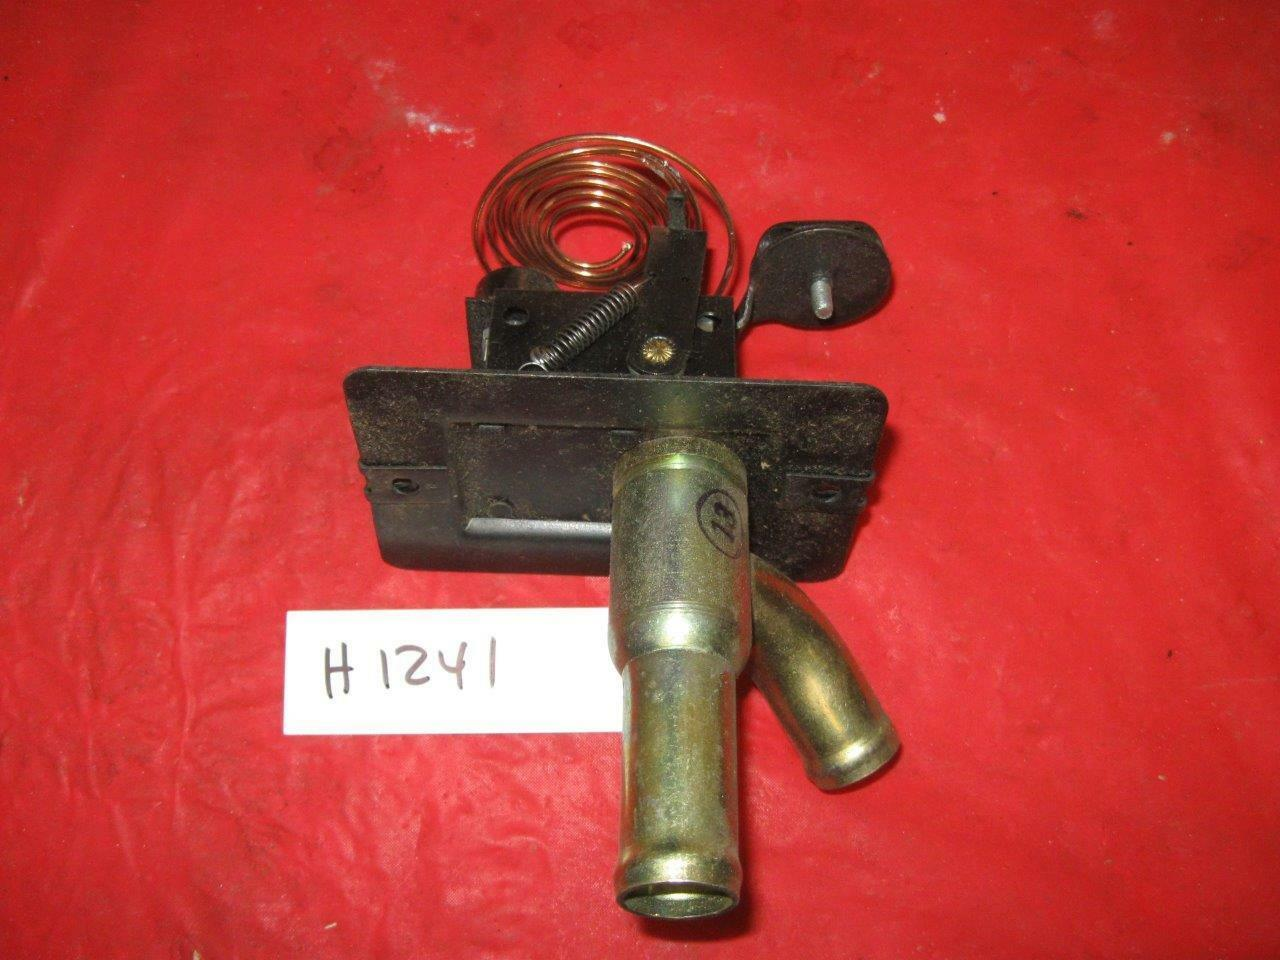 Studebaker 1962 1966 Nos Everhot Heater Control Valve H1241 1554534 2002 Audi A4 Core 1 Of 1only Available See More